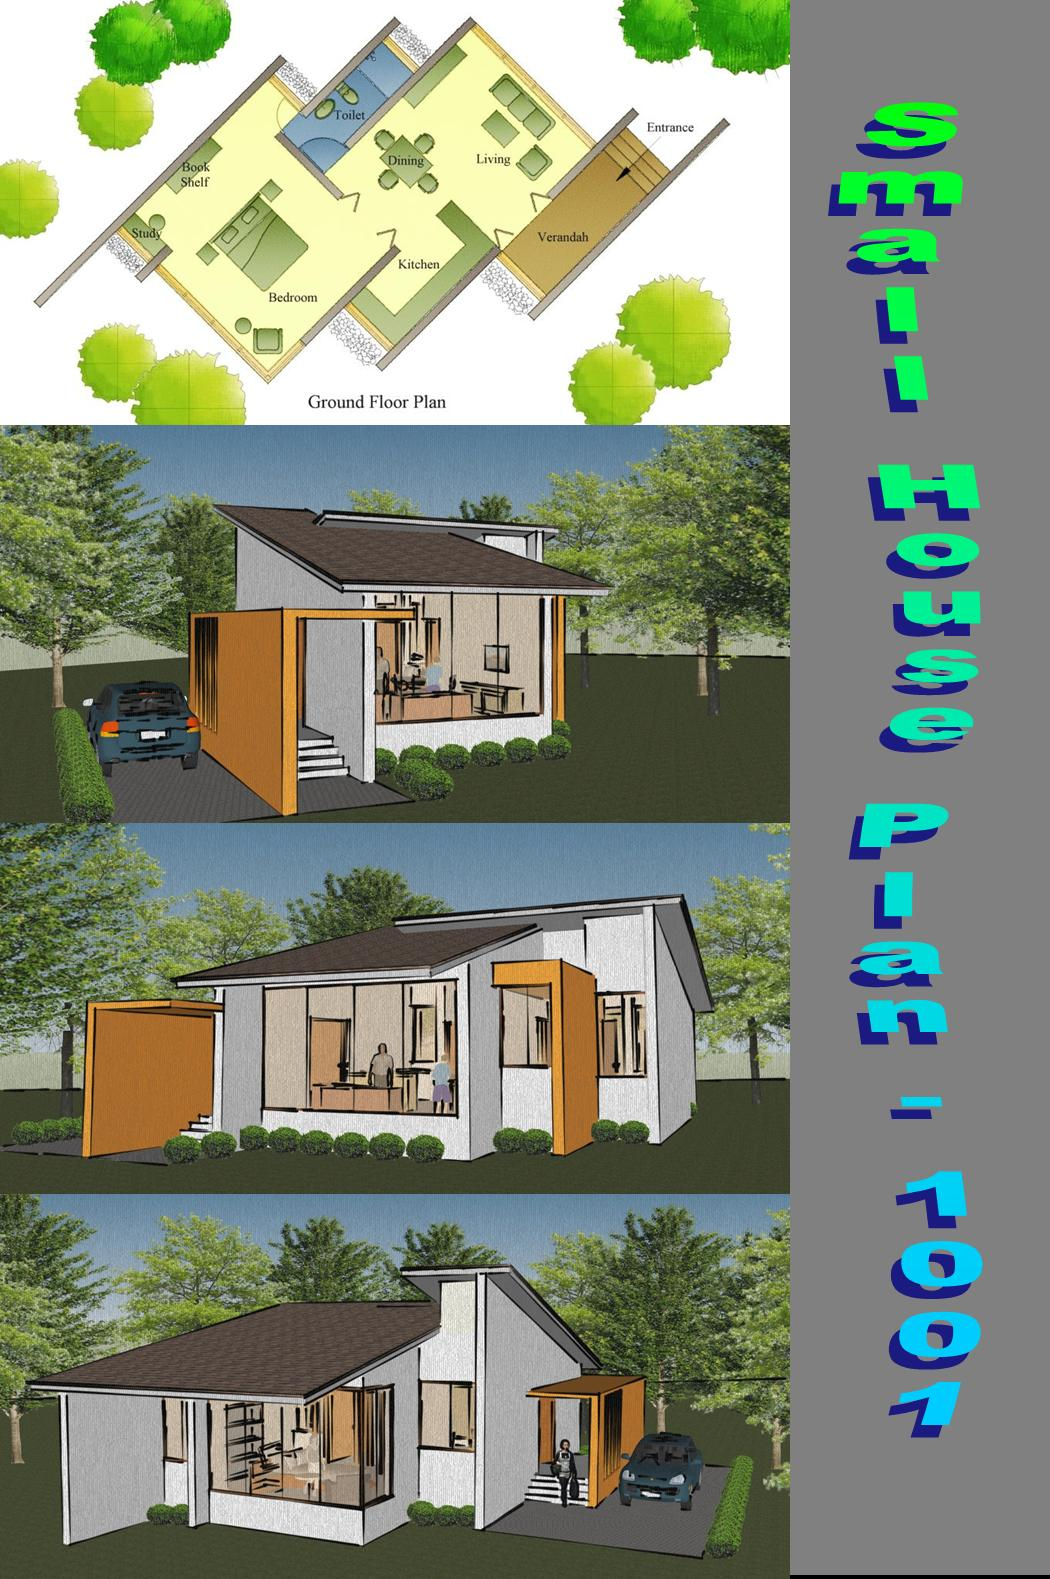 Home plans in india 5 best small home plans from for Best home designs 2013